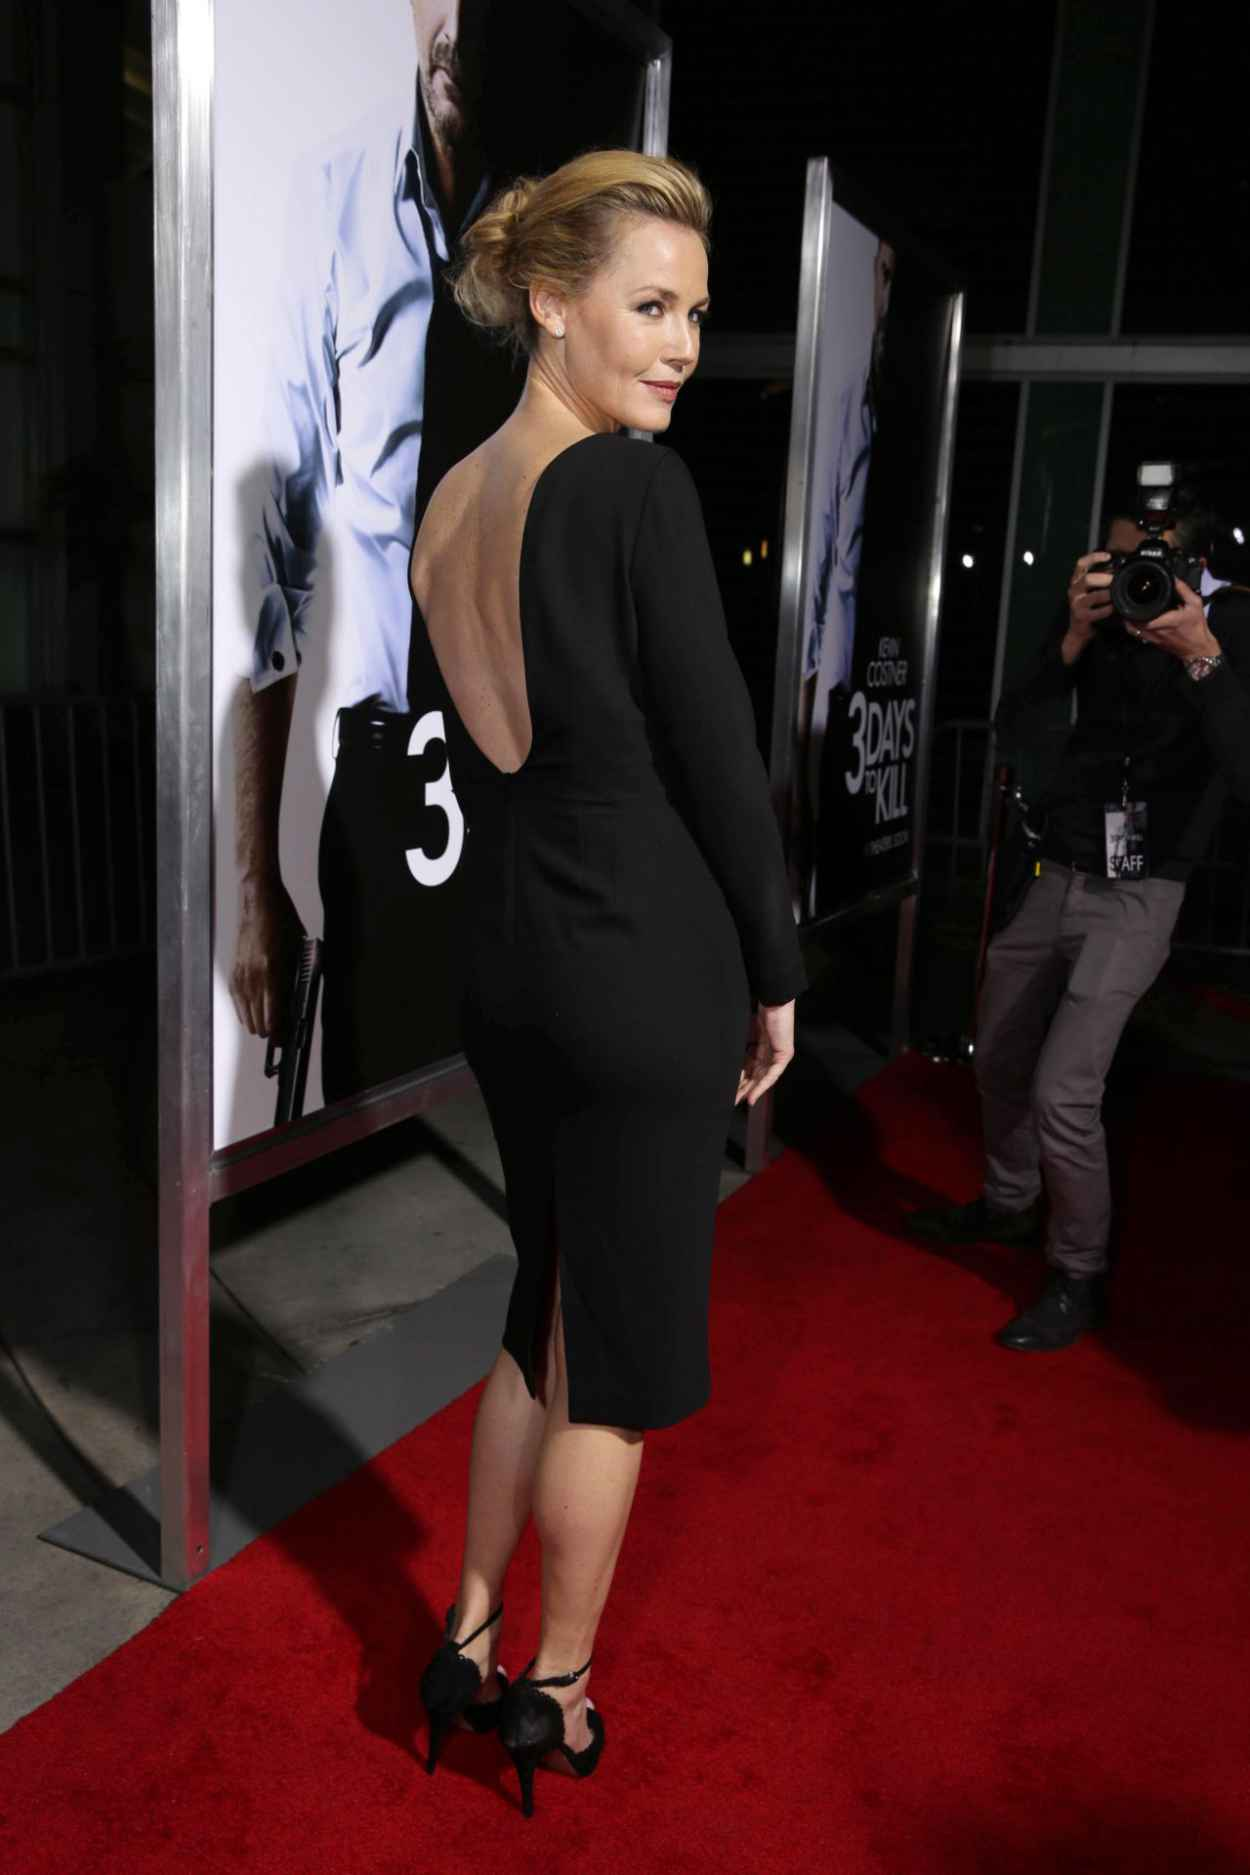 Connie Nielsen - 3 Days To Kill Red Carpet in Los Angeles-3